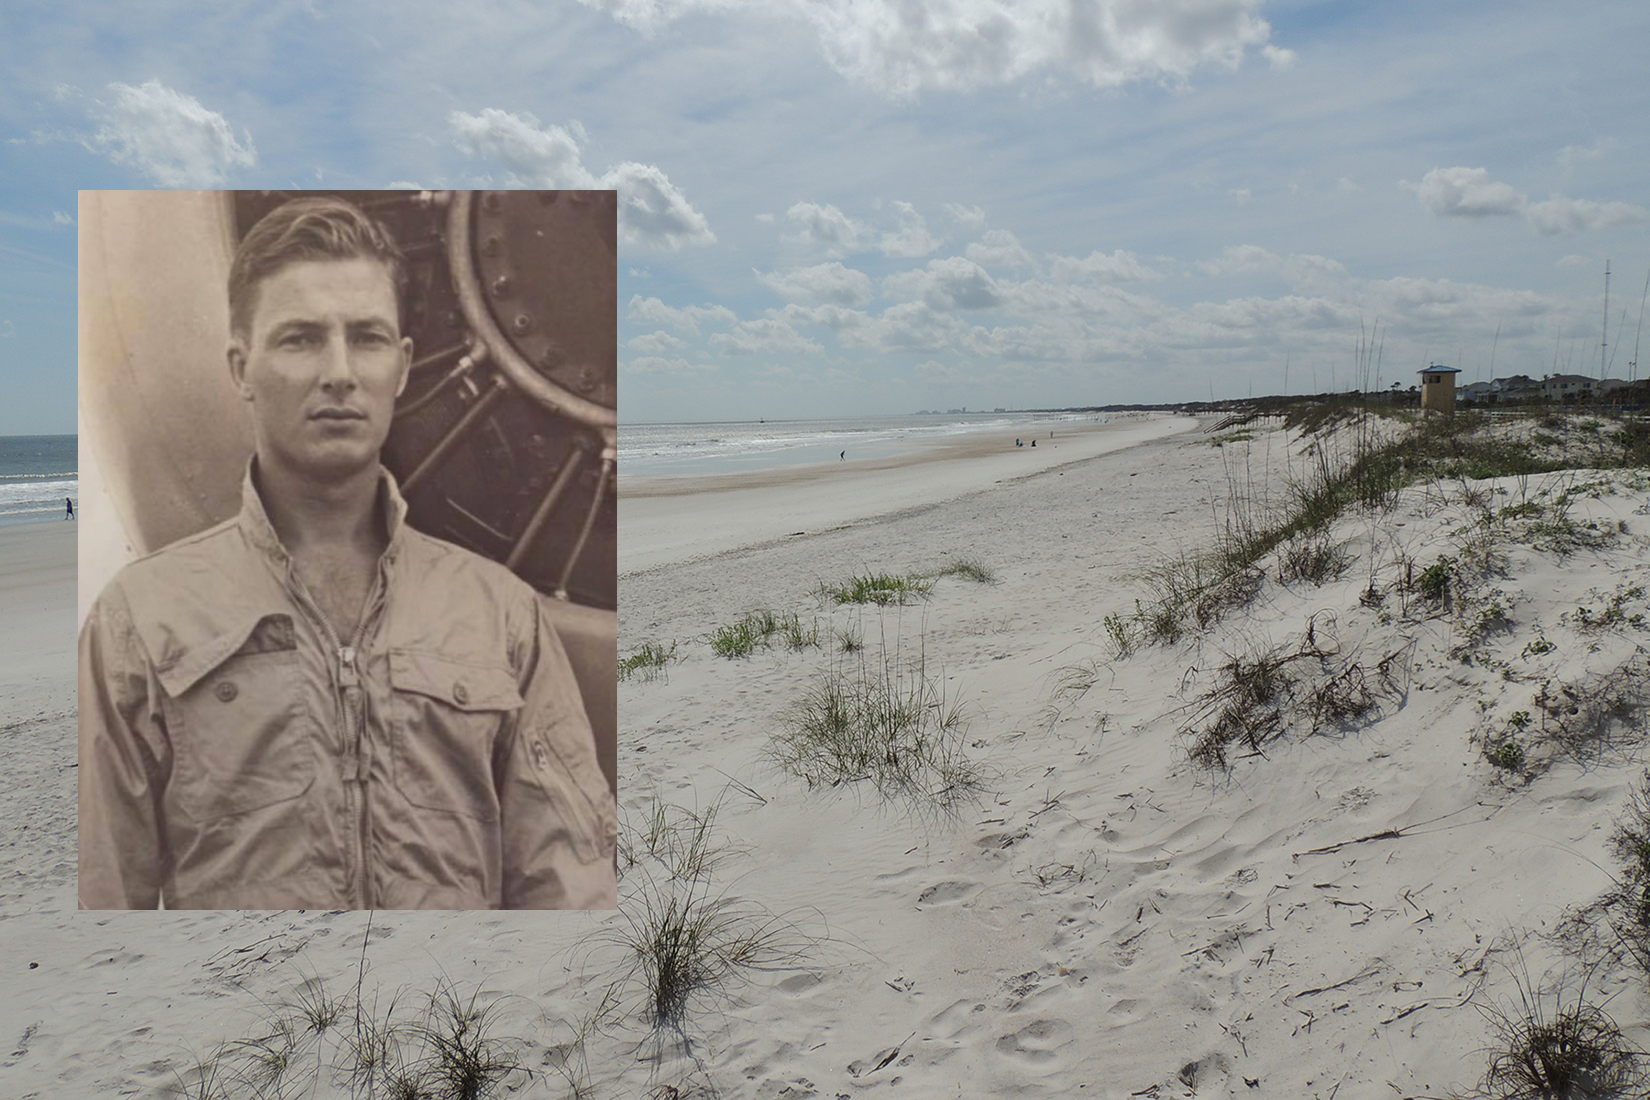 A montage of a beach and a photo of a man.